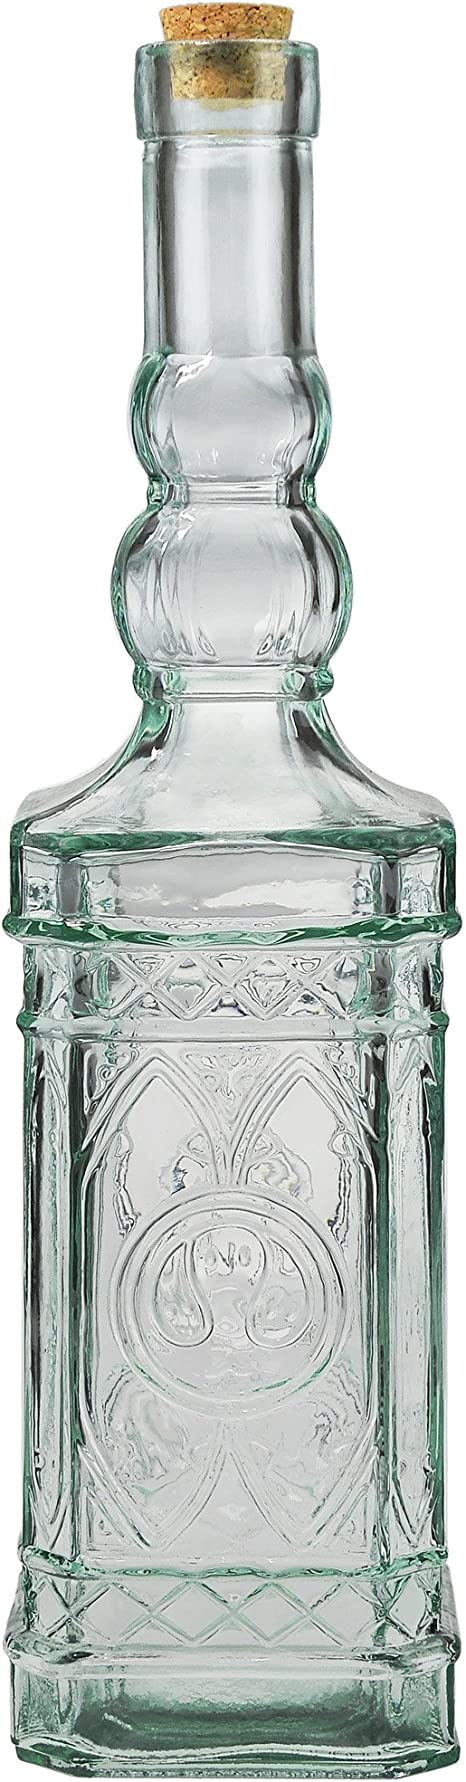 Couronne Company Clear Ornate Decorative Bottle With Cork G5033 23 7oz 1 Piece 700ml Home Kitchen